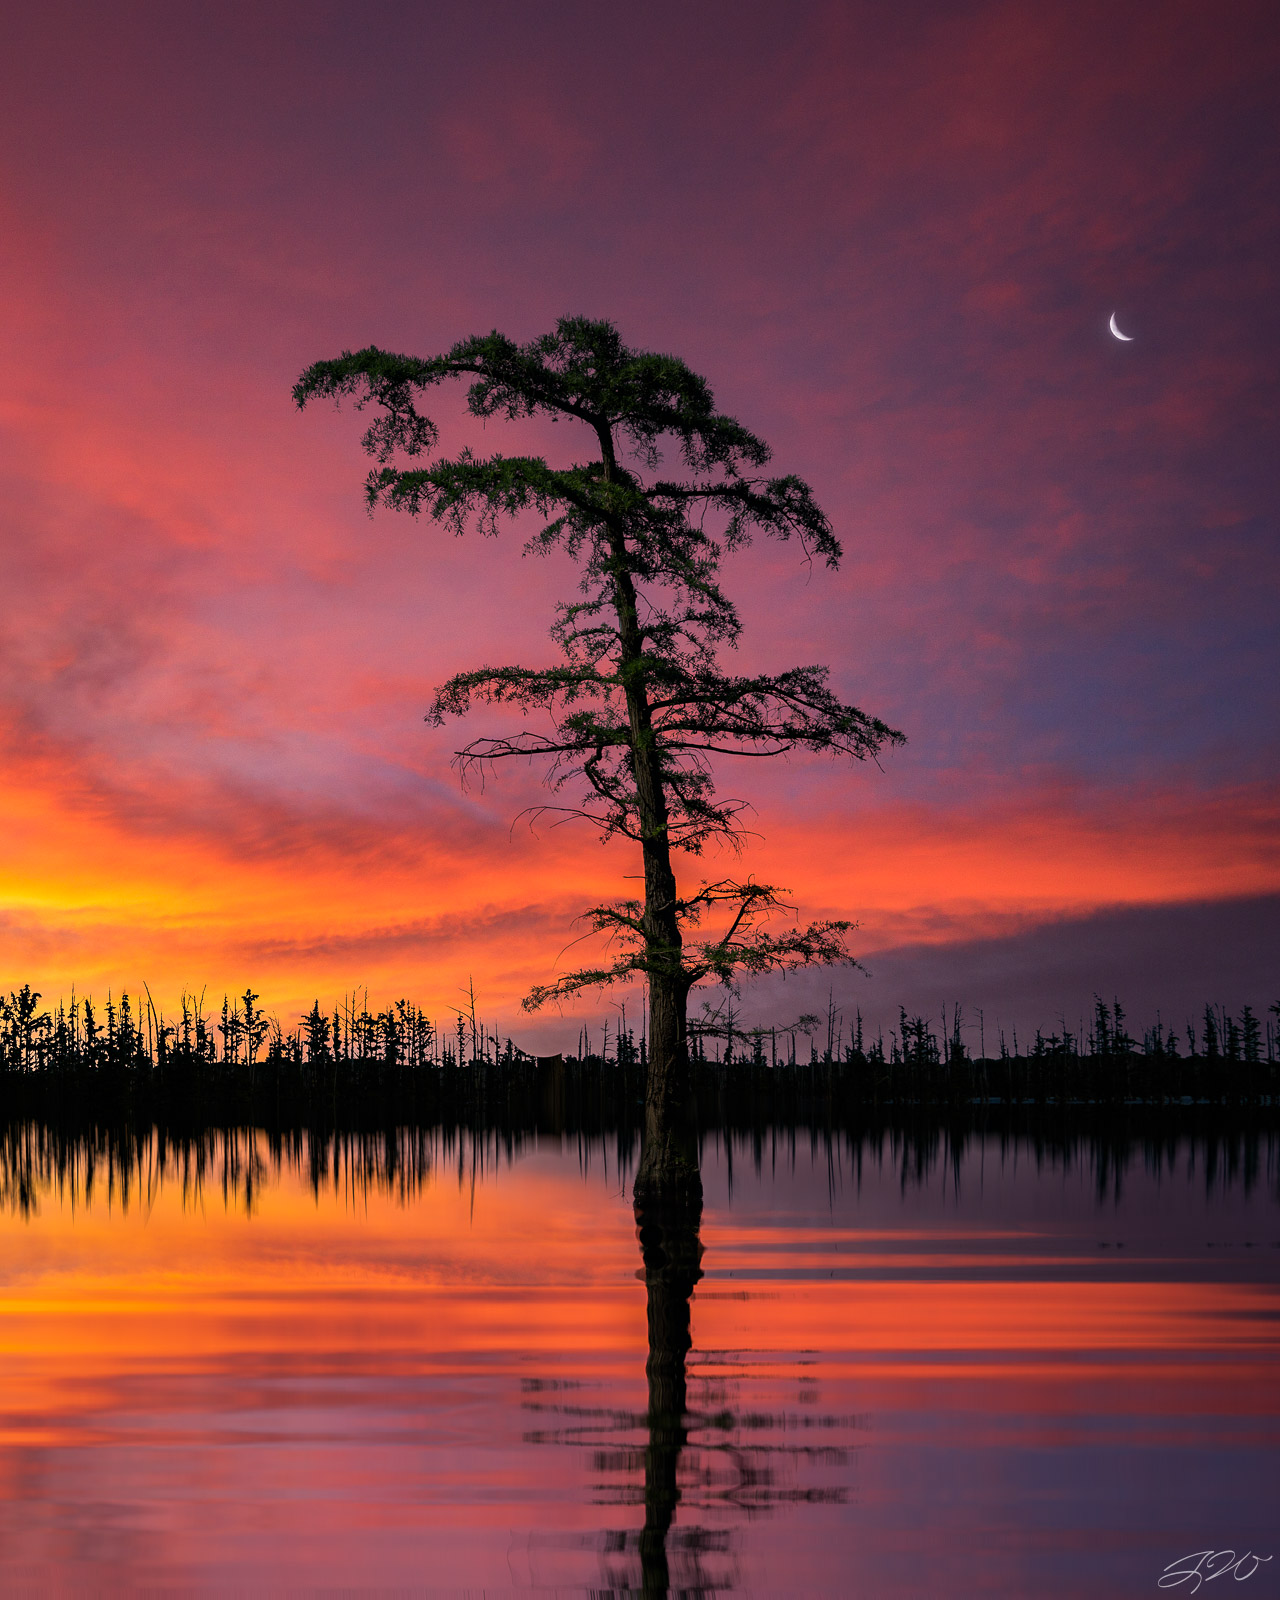 Fine Art Limited Edition of 100. A lone bald cypress tree during an amazingly colorful sunset on the lake. I've visited this...